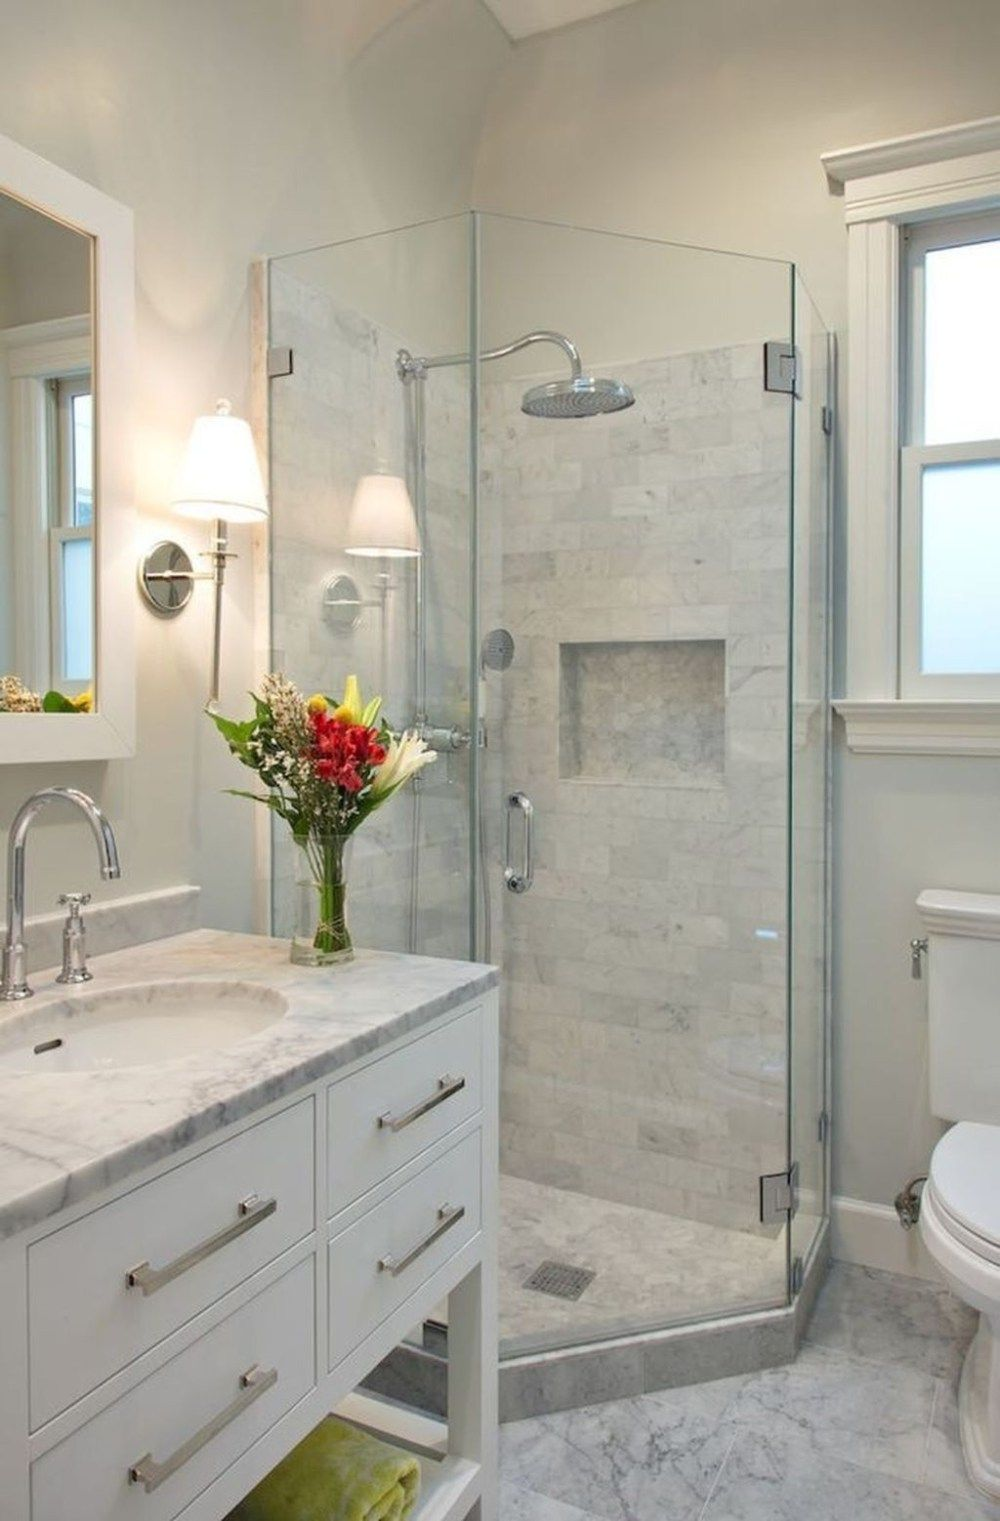 20 Hottest Small Bathroom Remodel Ideas For Space Saving Coodecor Bathroom Design Small Small Bathroom Renovations Small Bathroom